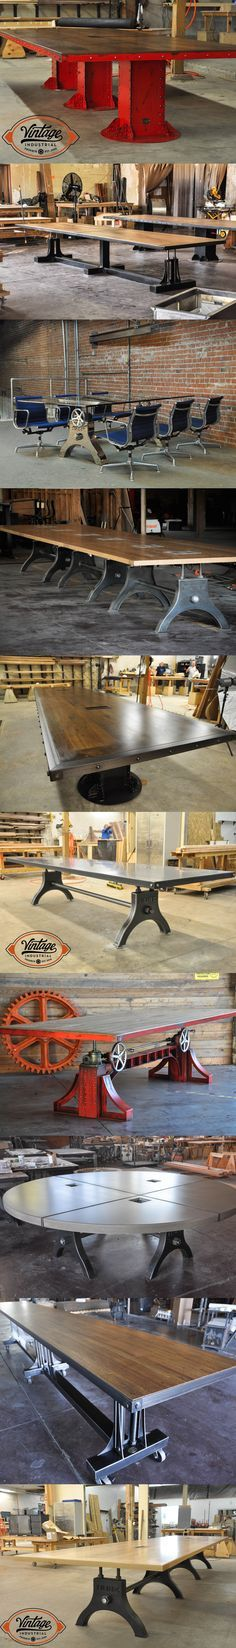 Vintage Industrial offers several conference table options that are all customizable with size, finish, color, dataport, and top material. We build to order in Phoenix and ship everywhere!